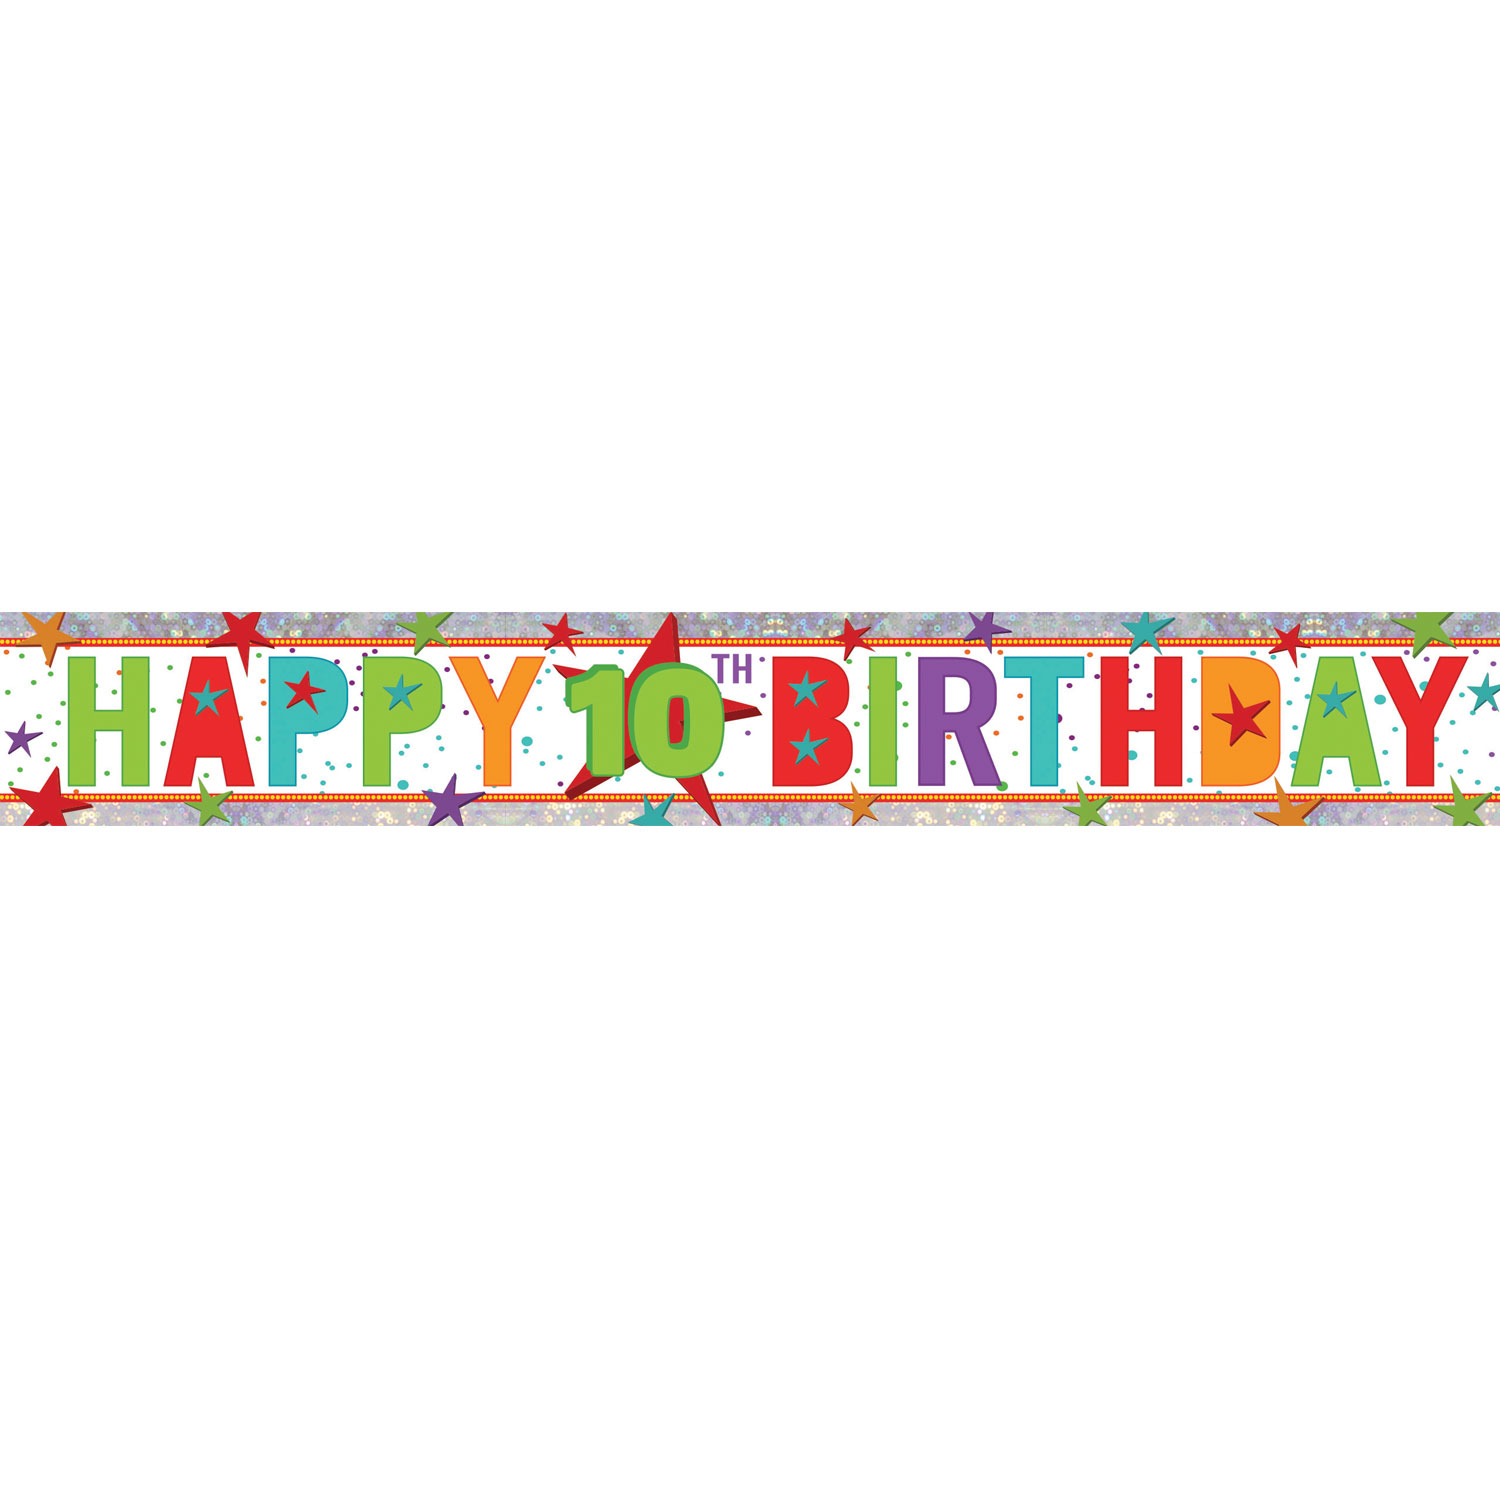 Happy 10th Birthday Holographic Foil Banners 2 7m - 12 PC